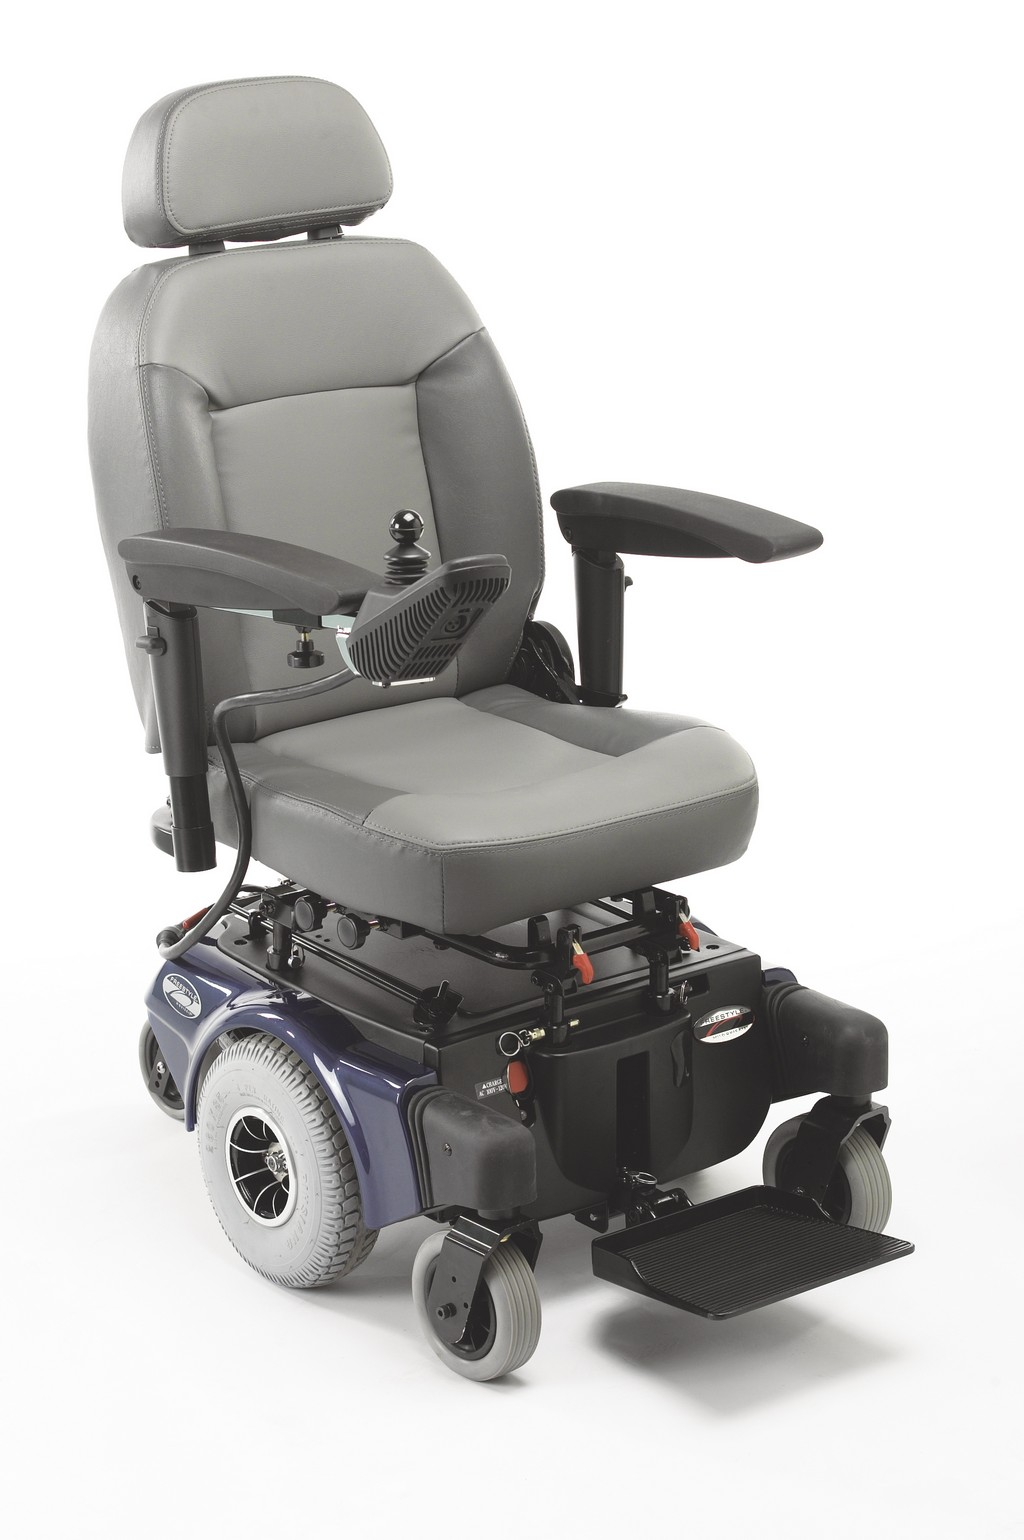 electric wheelchairs for sale, electric wheelchairs in milwaukee wi, monster electric wheel chair tires, electric wheel chair